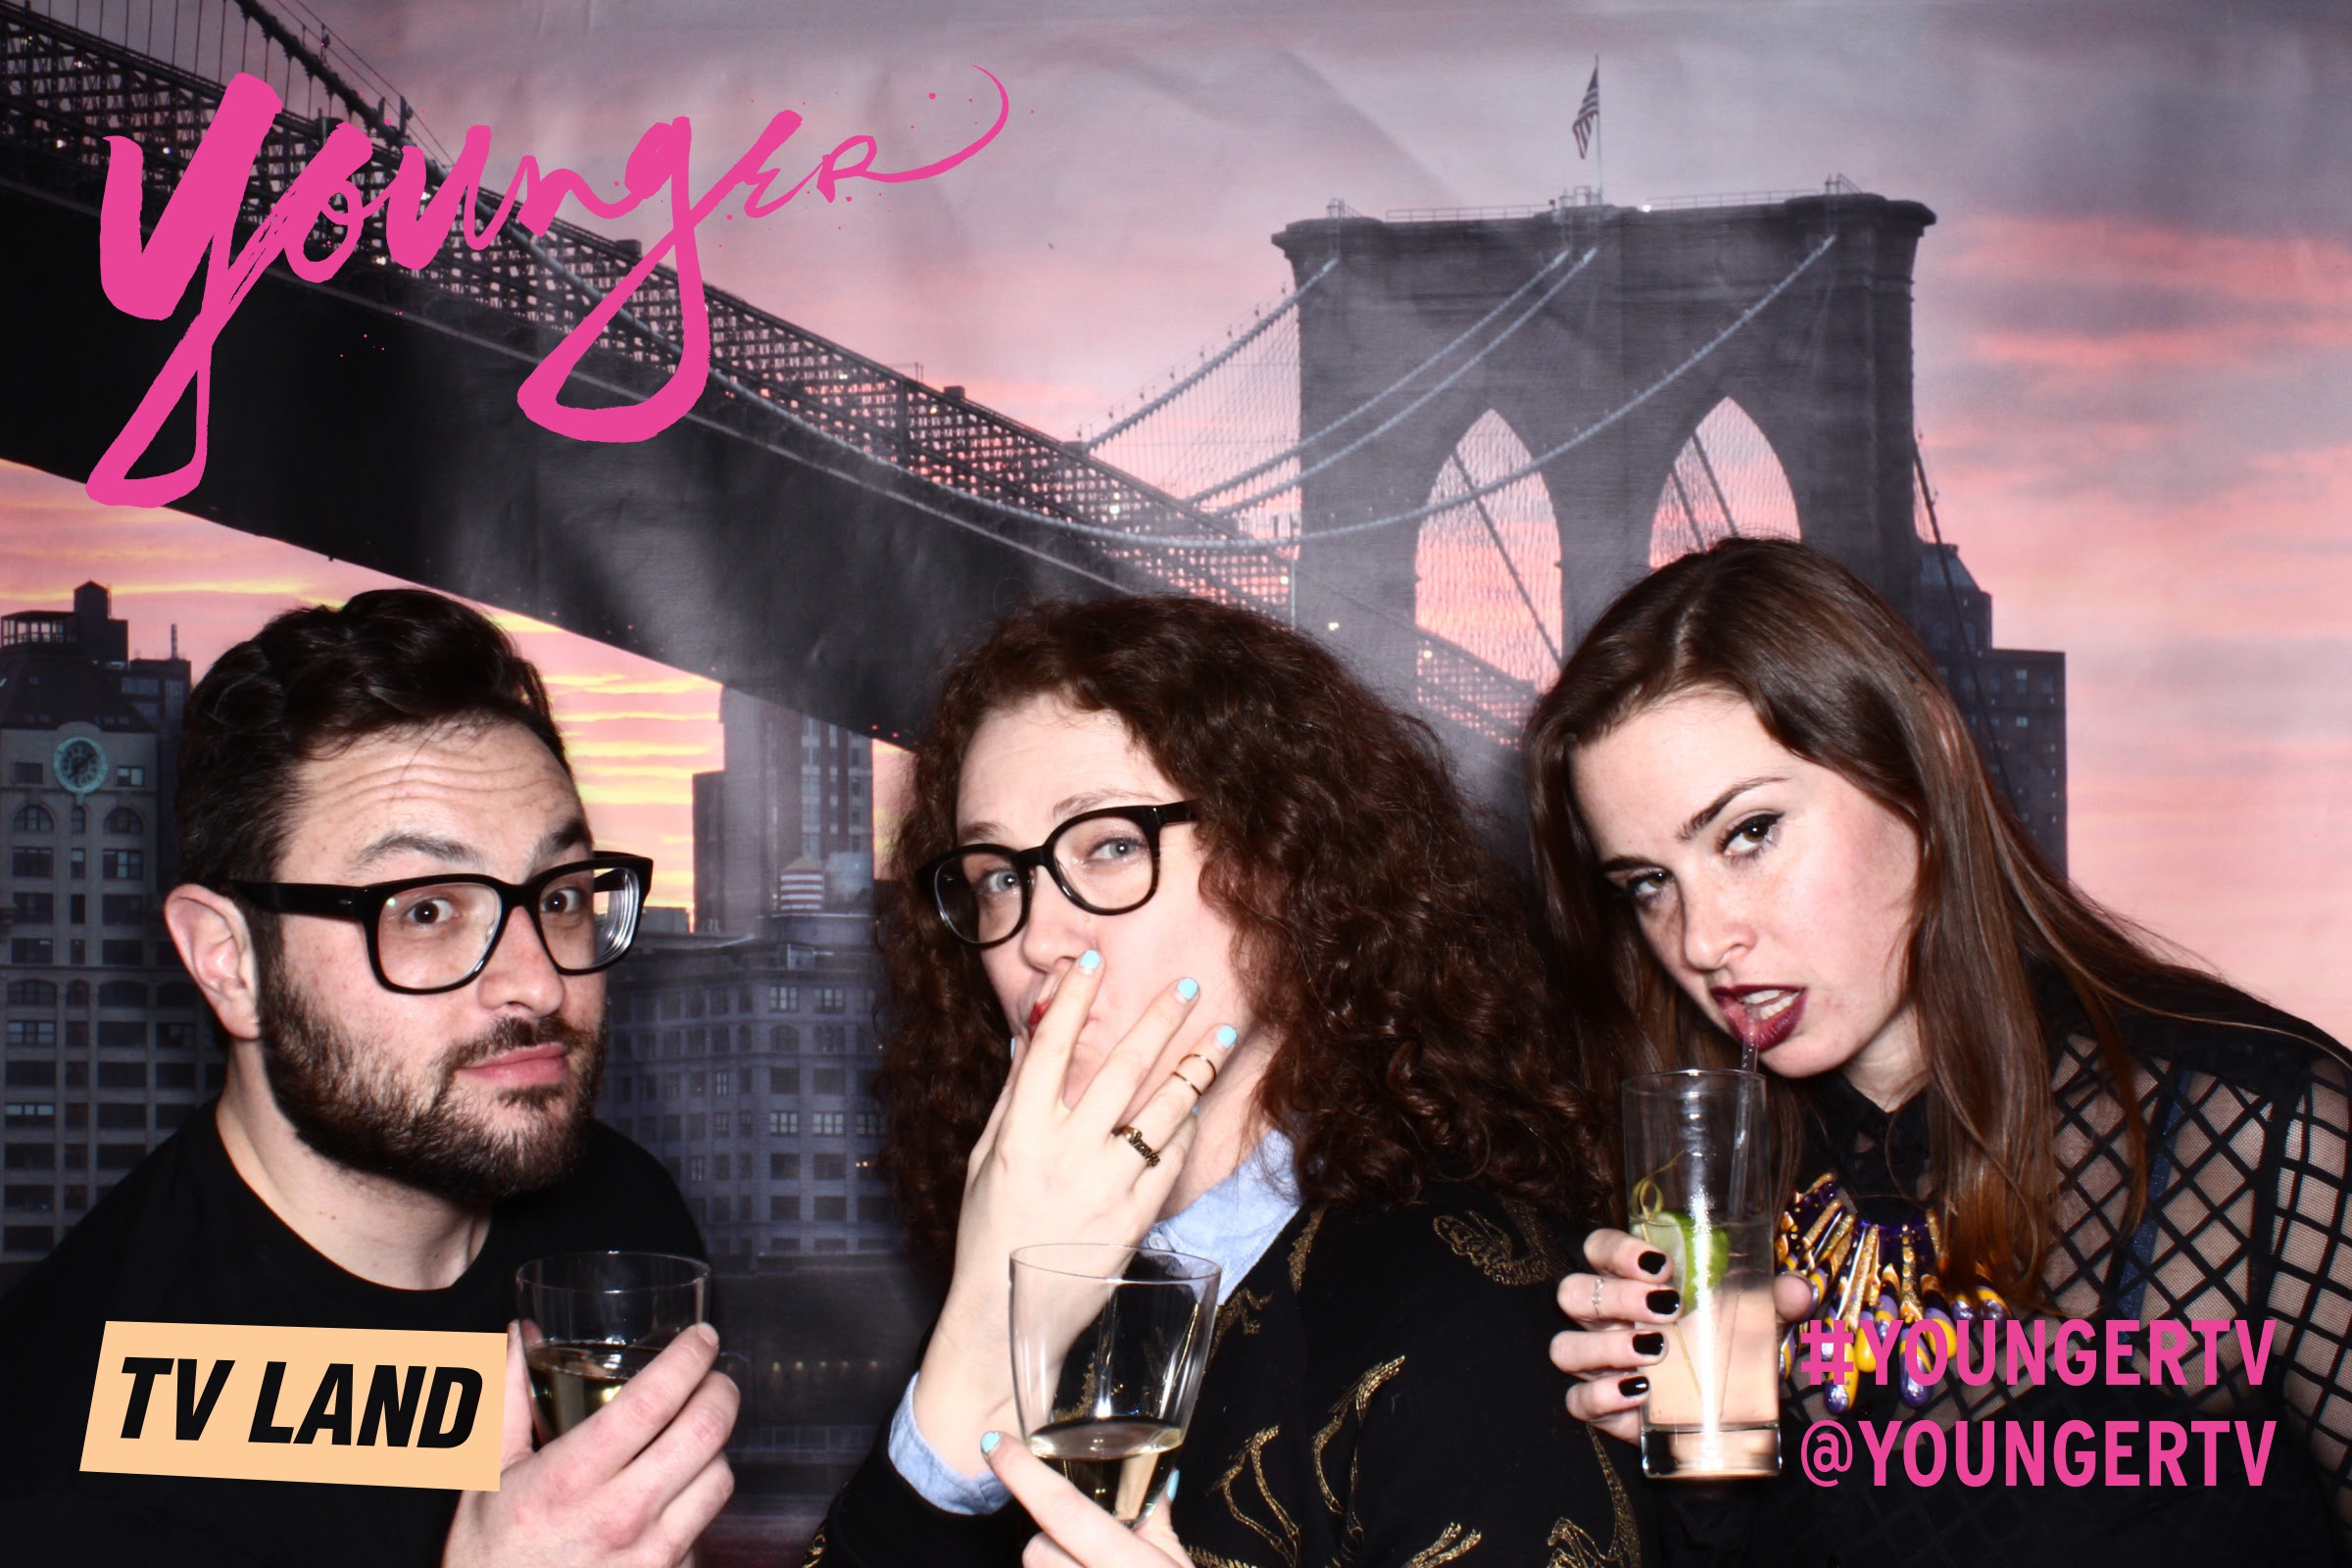 Premiere party for S1 of Younger